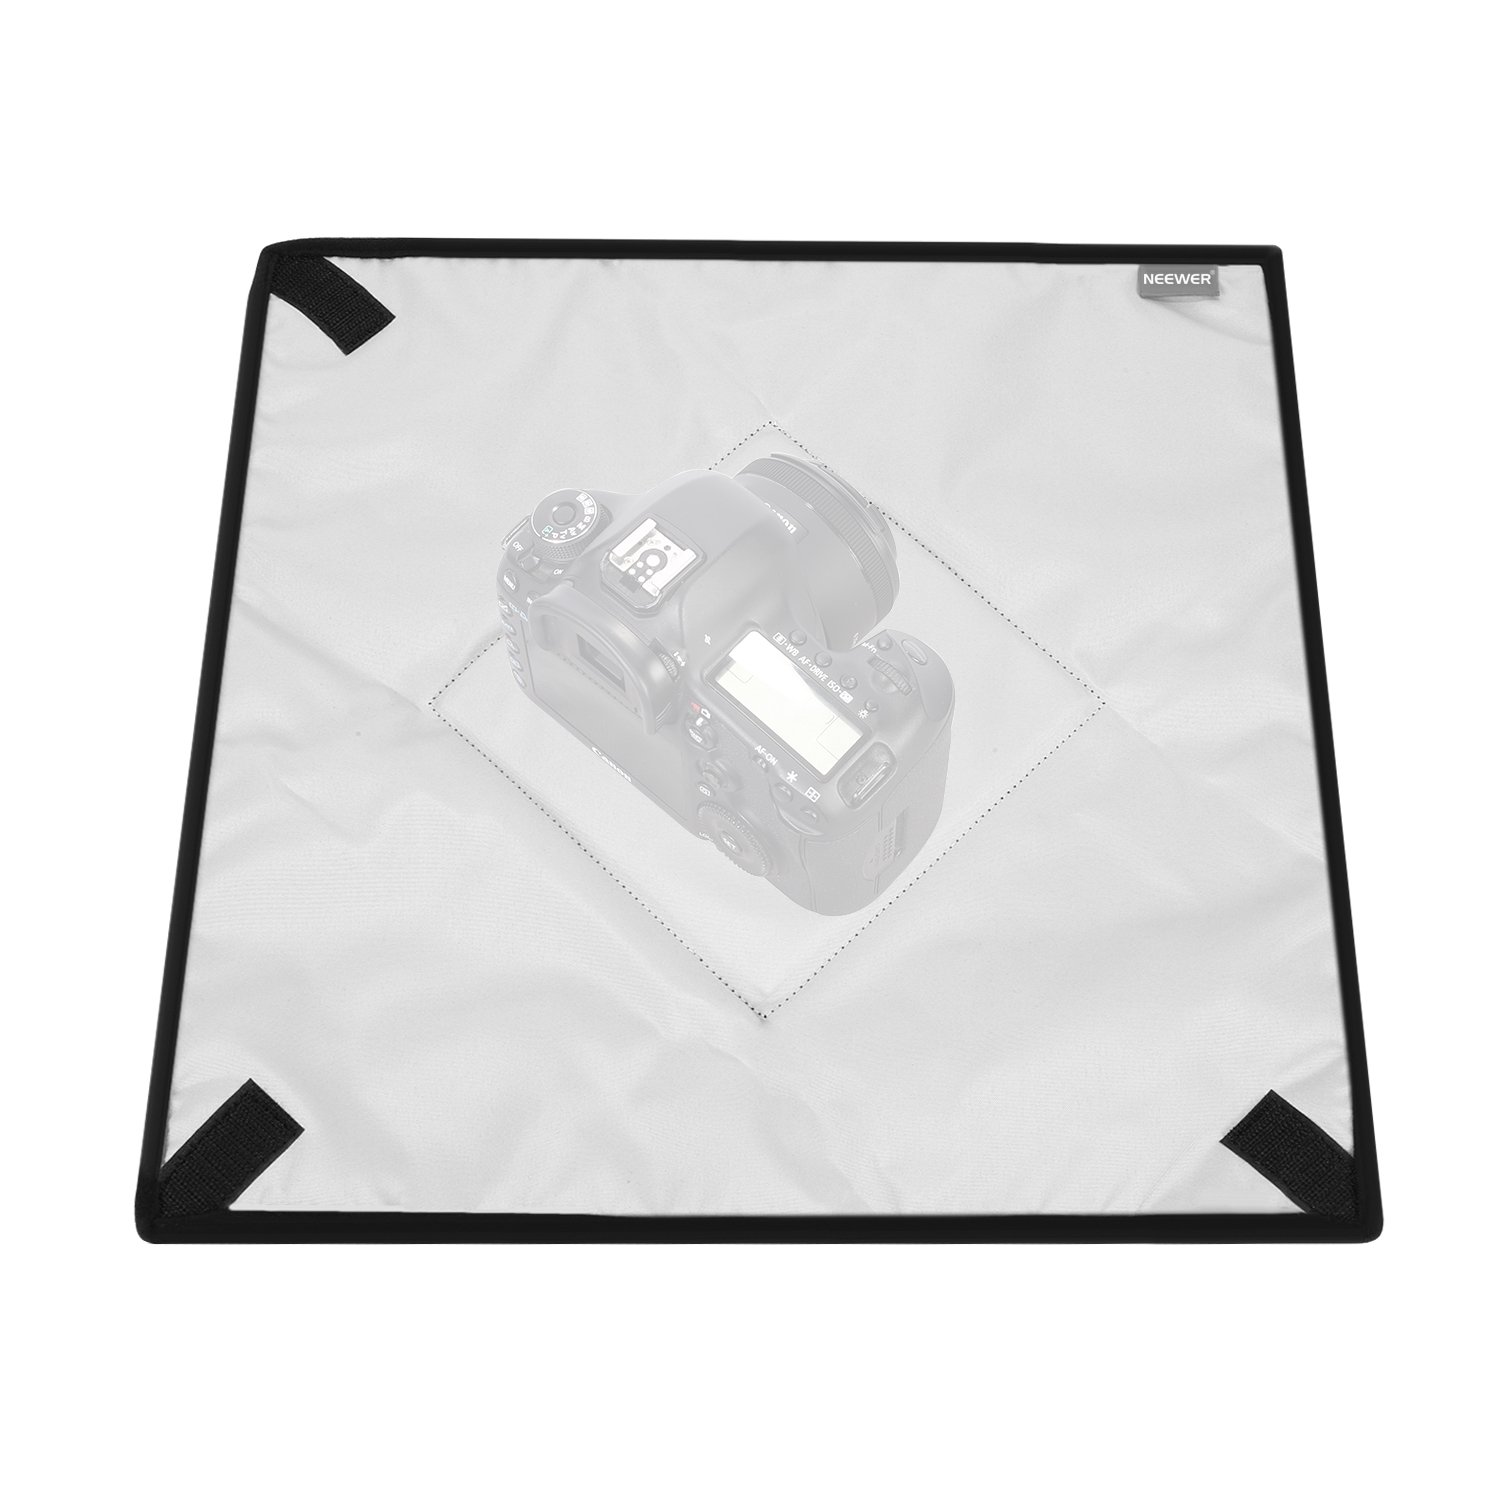 Neewer Universal 15x15 inches Protective Wrap Cover for Cameras, Smartphones and Other Electronic Equipment